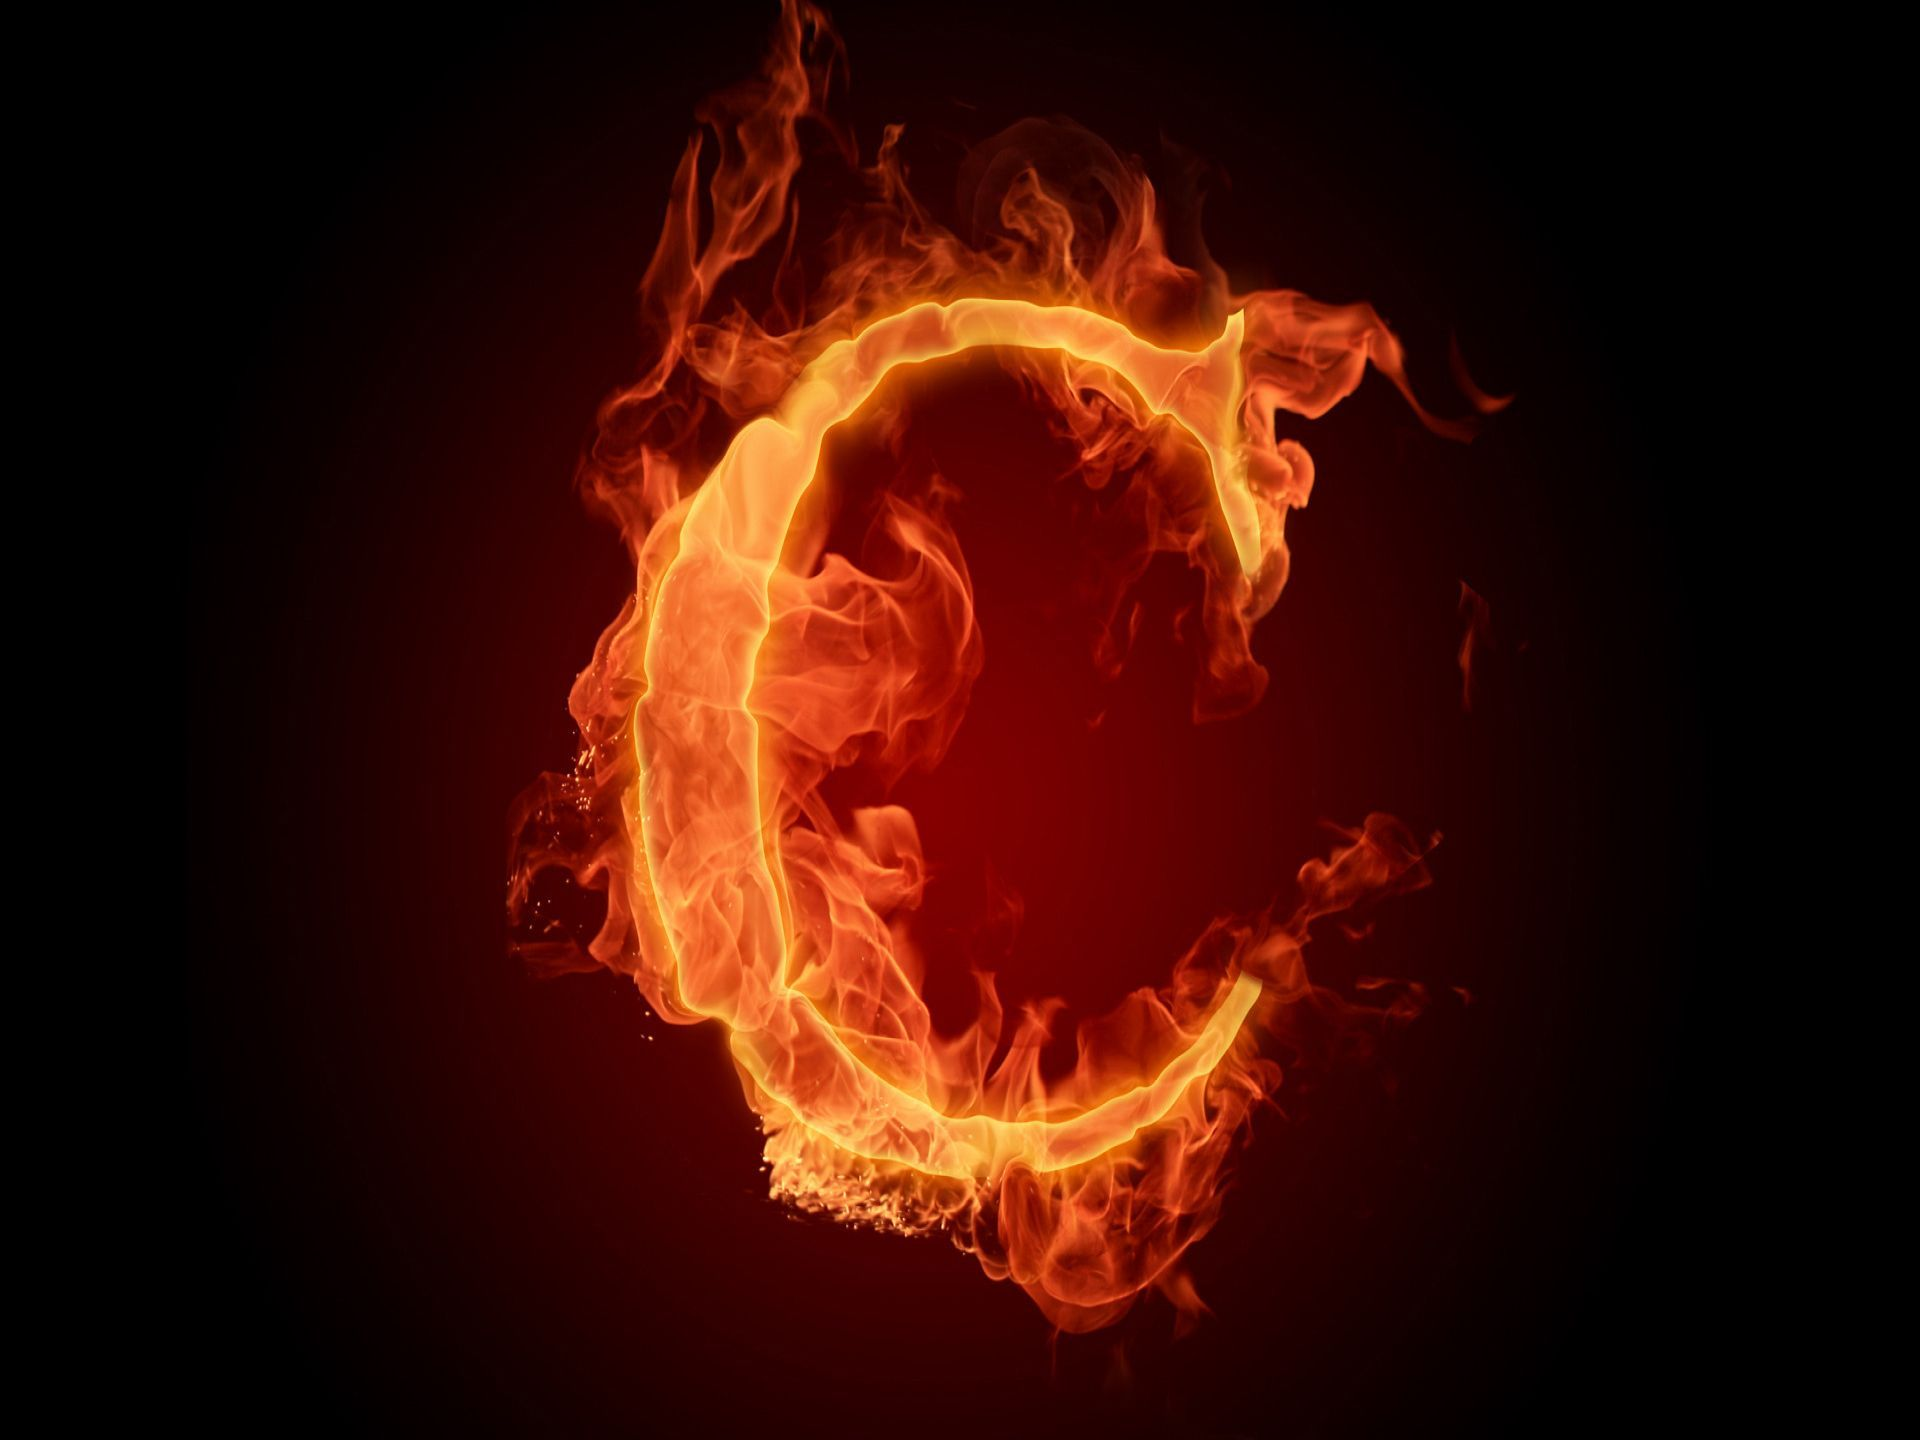 Captivating The Fiery English Alphabet Picture C Resolution 1920x1440